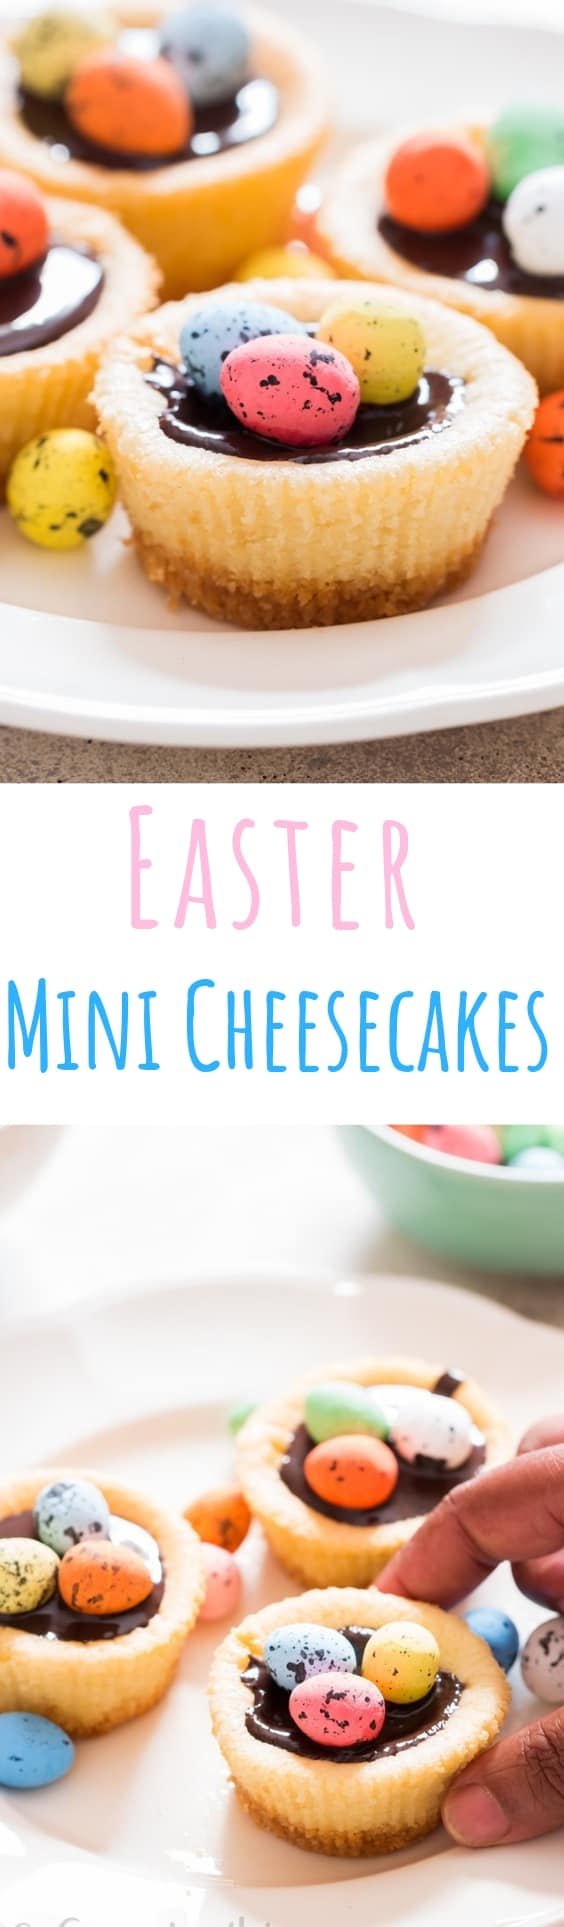 Easter mini cheesecake with dark chocolate and chocolate eggs on top with text overlay